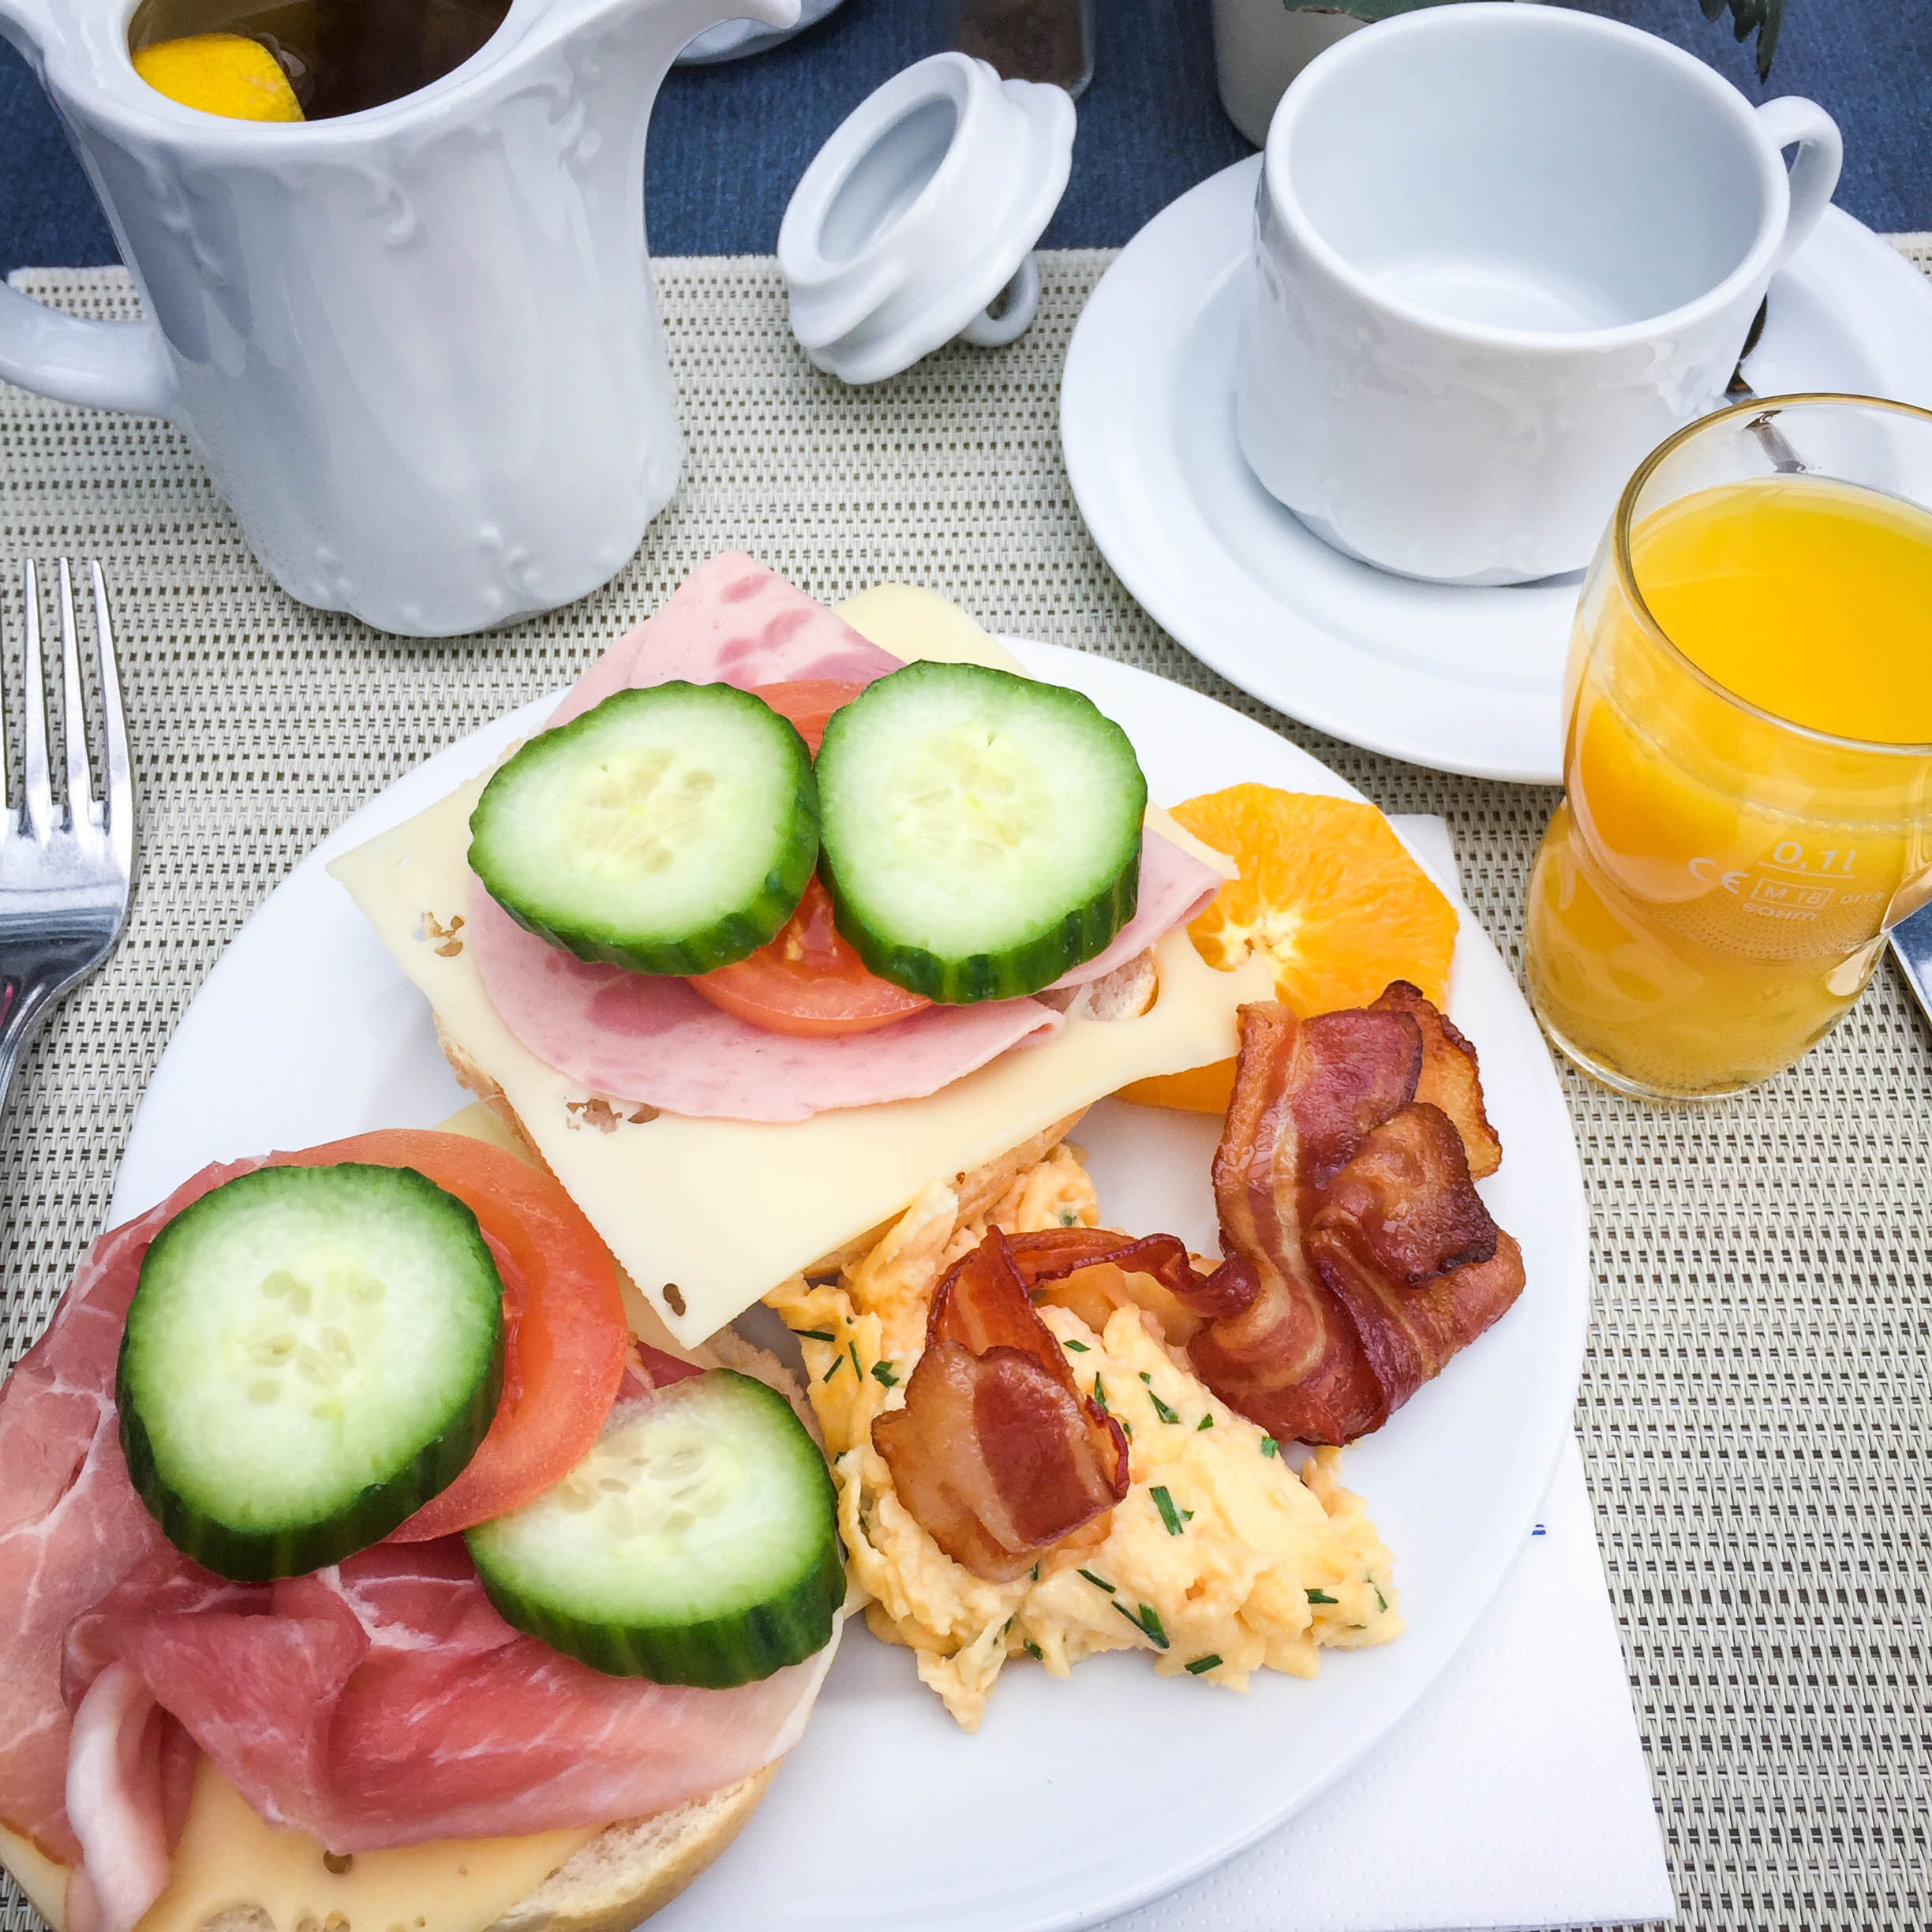 Breakfast at H+ Hotel Alpina Garmisch-Partenkirchen